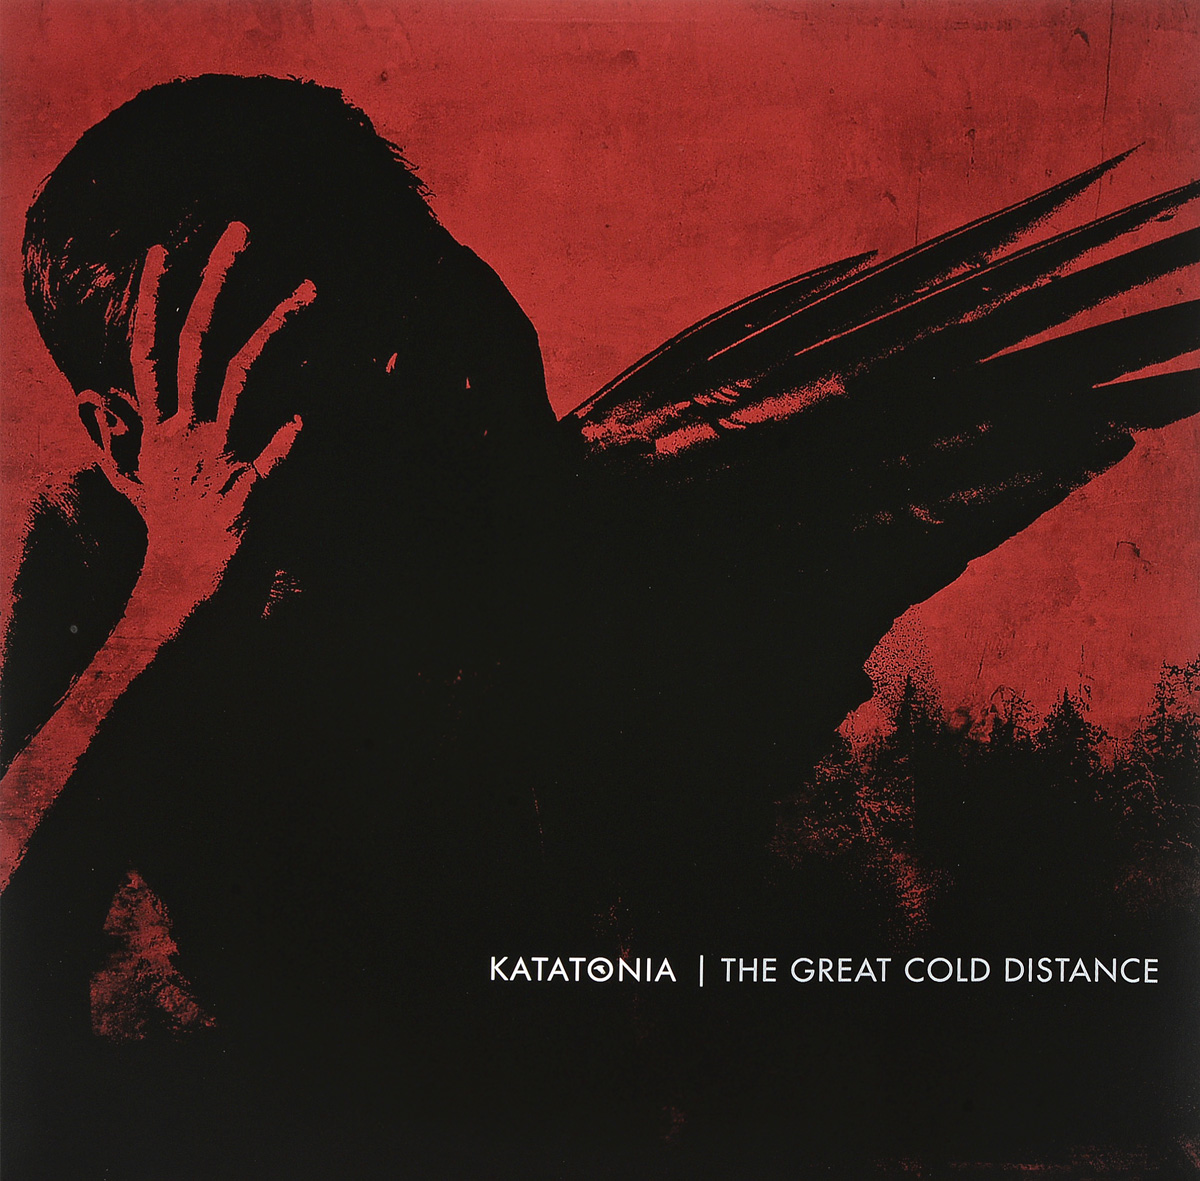 Katatonia KATATONIA. The Great Cold Distance (10th Anniversary Edition) (2 LP) scorpions – tokyo tapes 50th anniversary deluxe edition 2 lp 2 cd